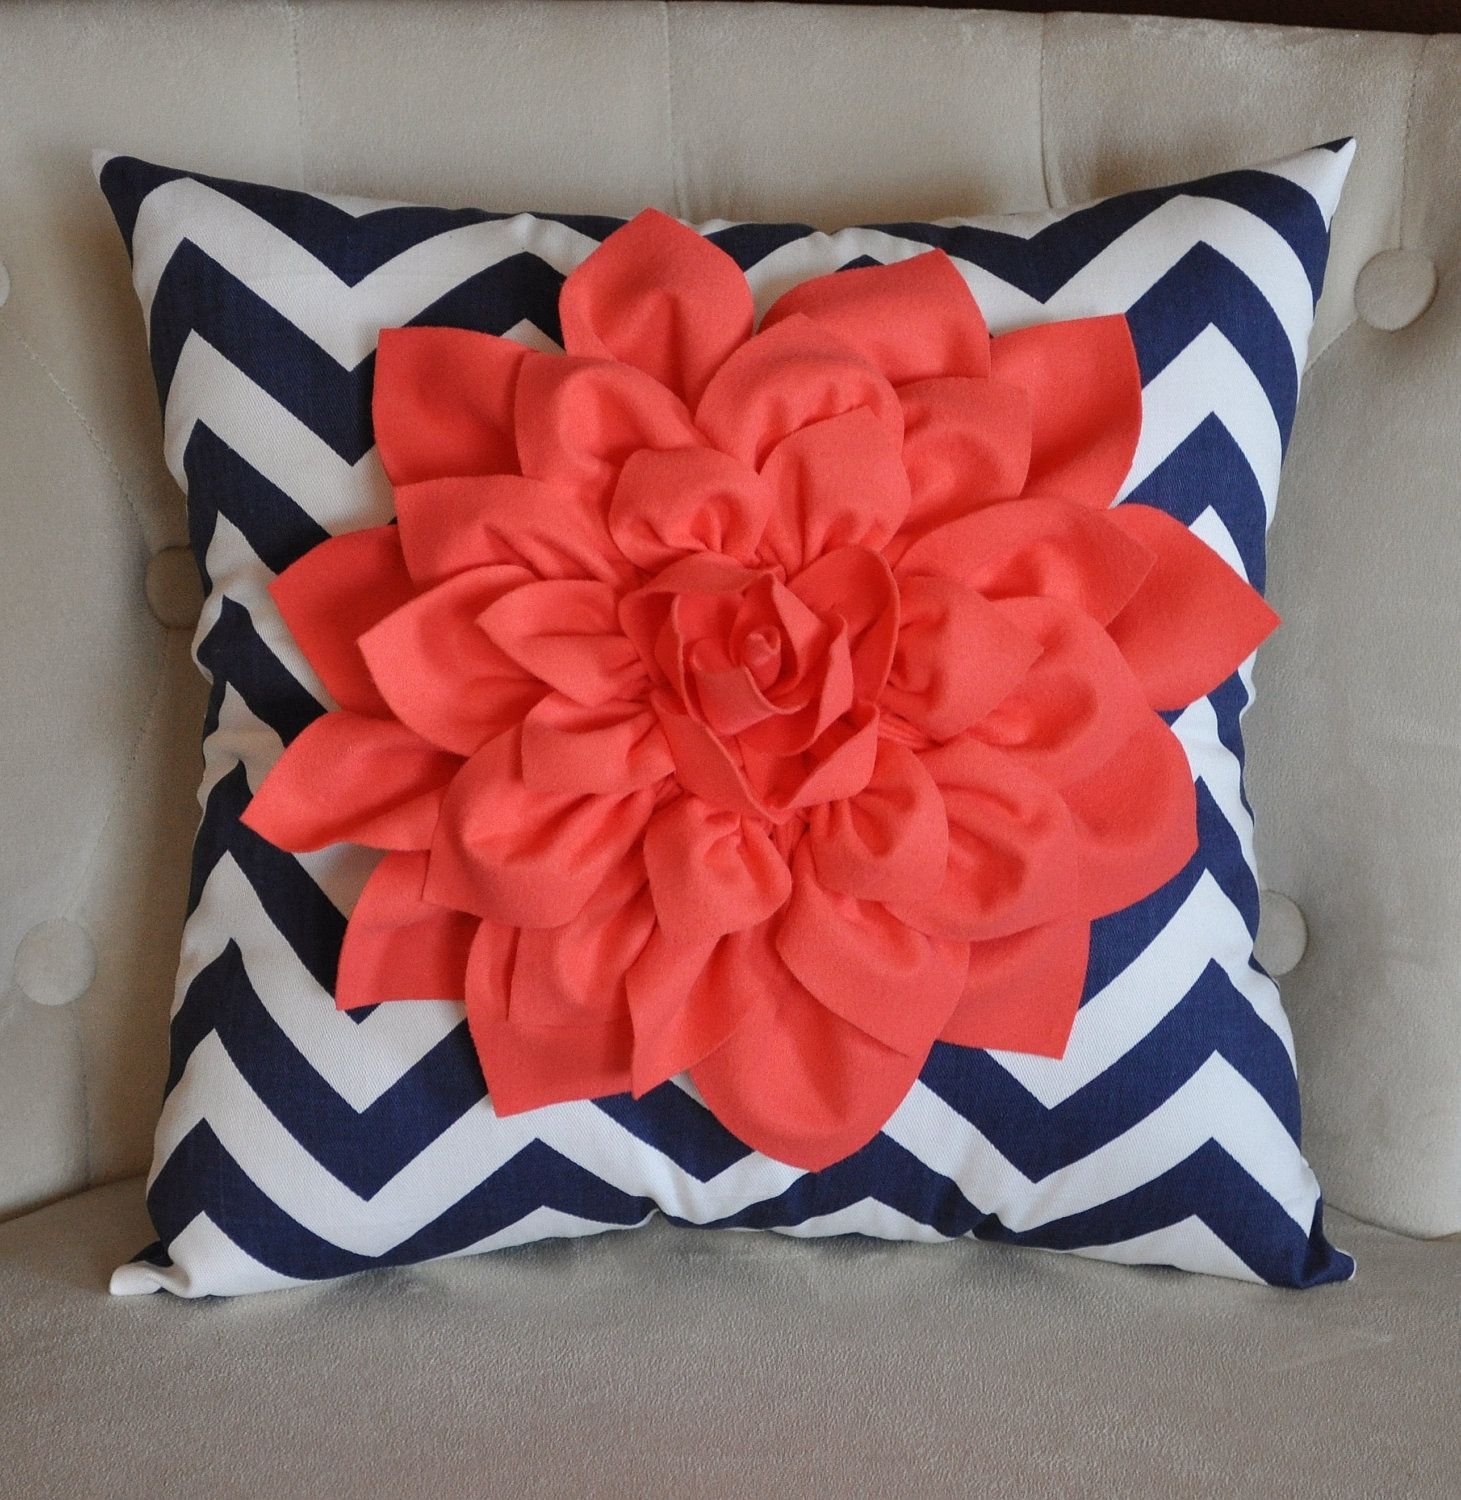 info grey pillow throw navy yellow and blue velvet white pillows concassage coral orange